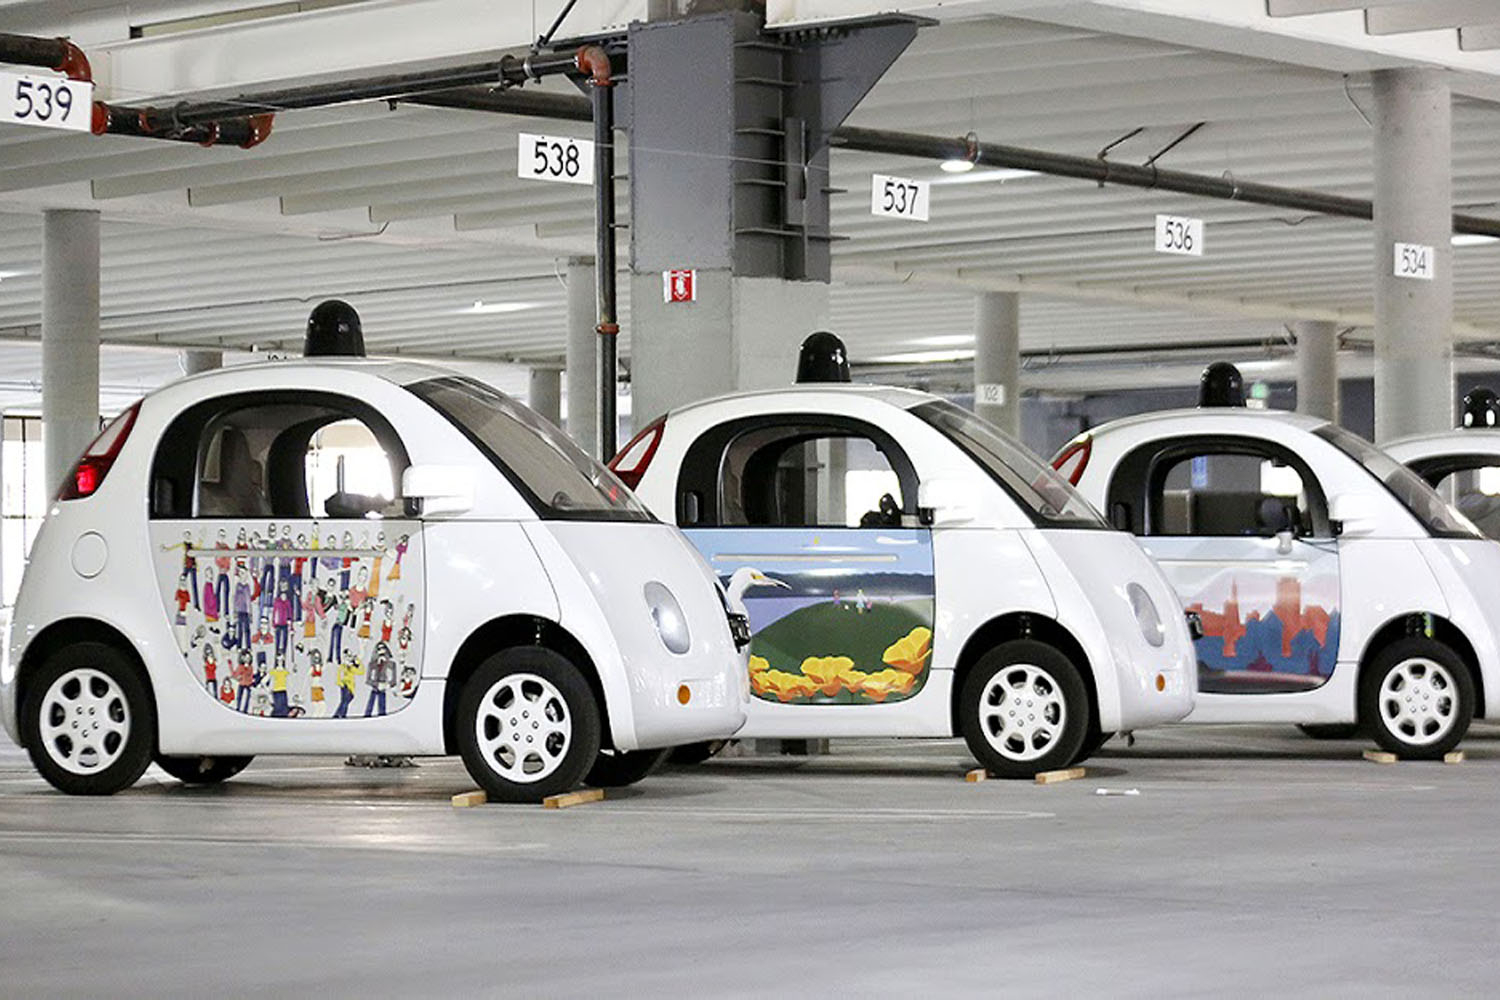 Google Self-Driving Cars Are Going Beyond Cute